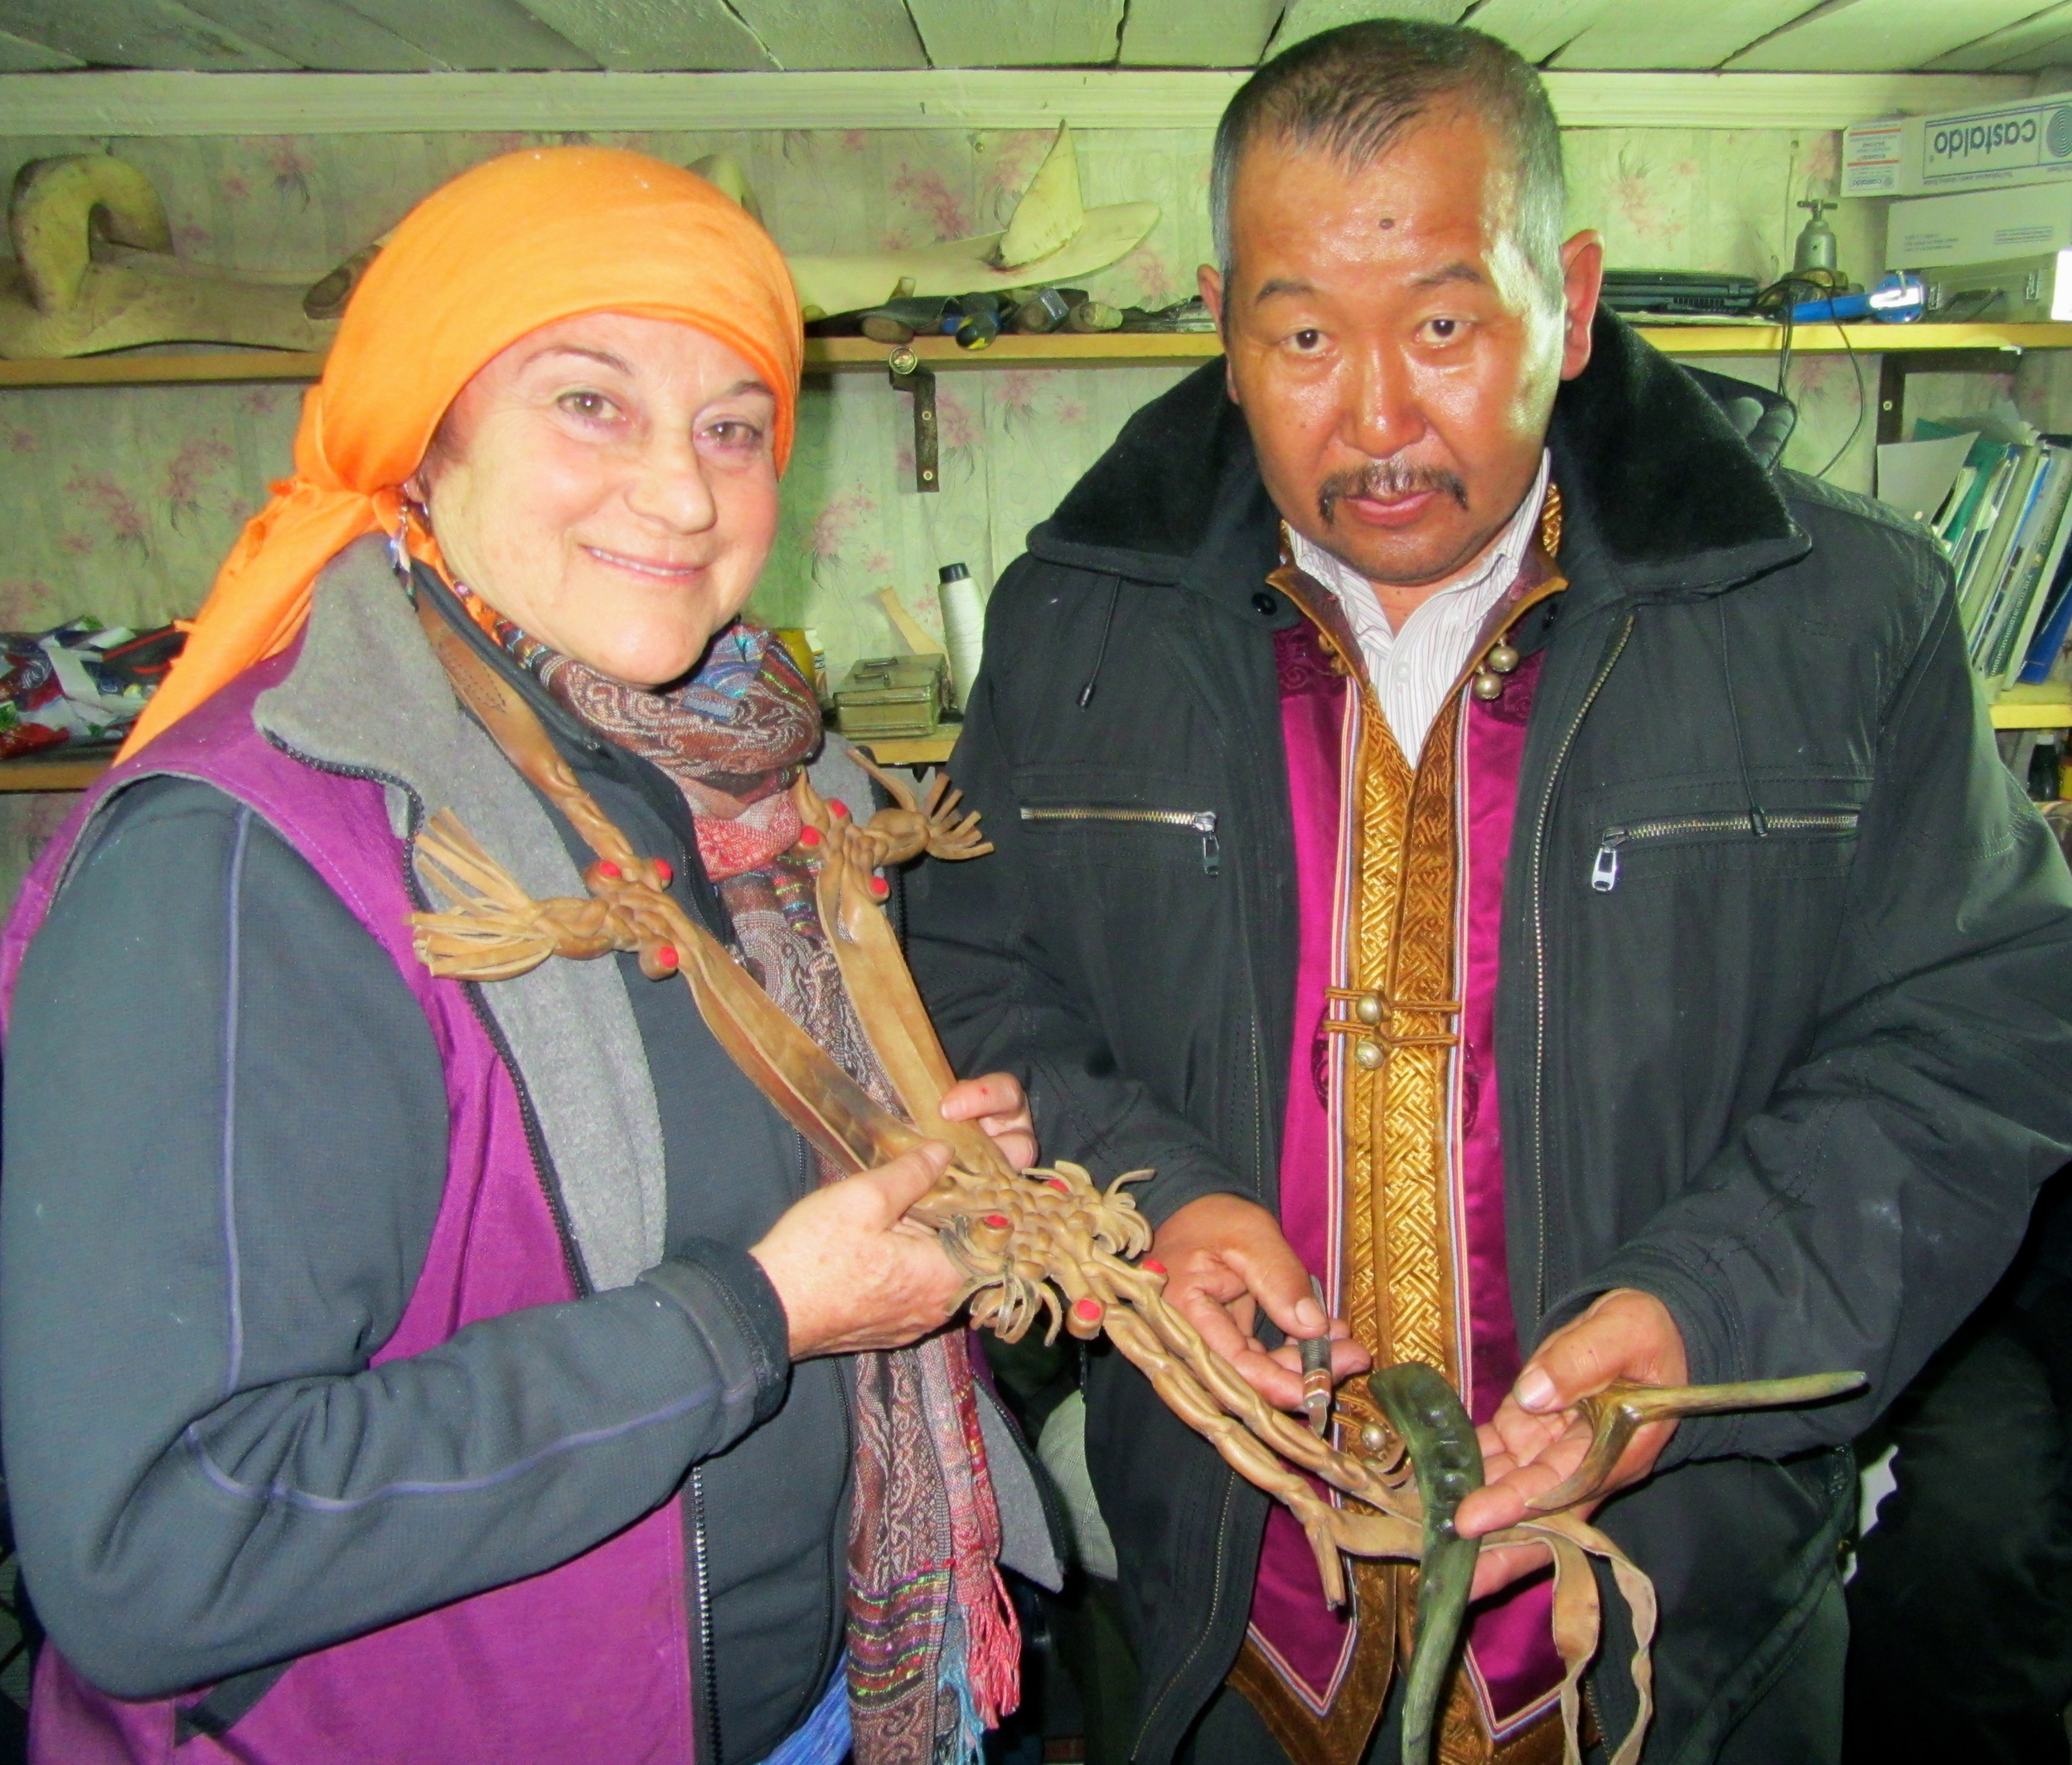 Lisa is gifted some traditional Altai leather work.